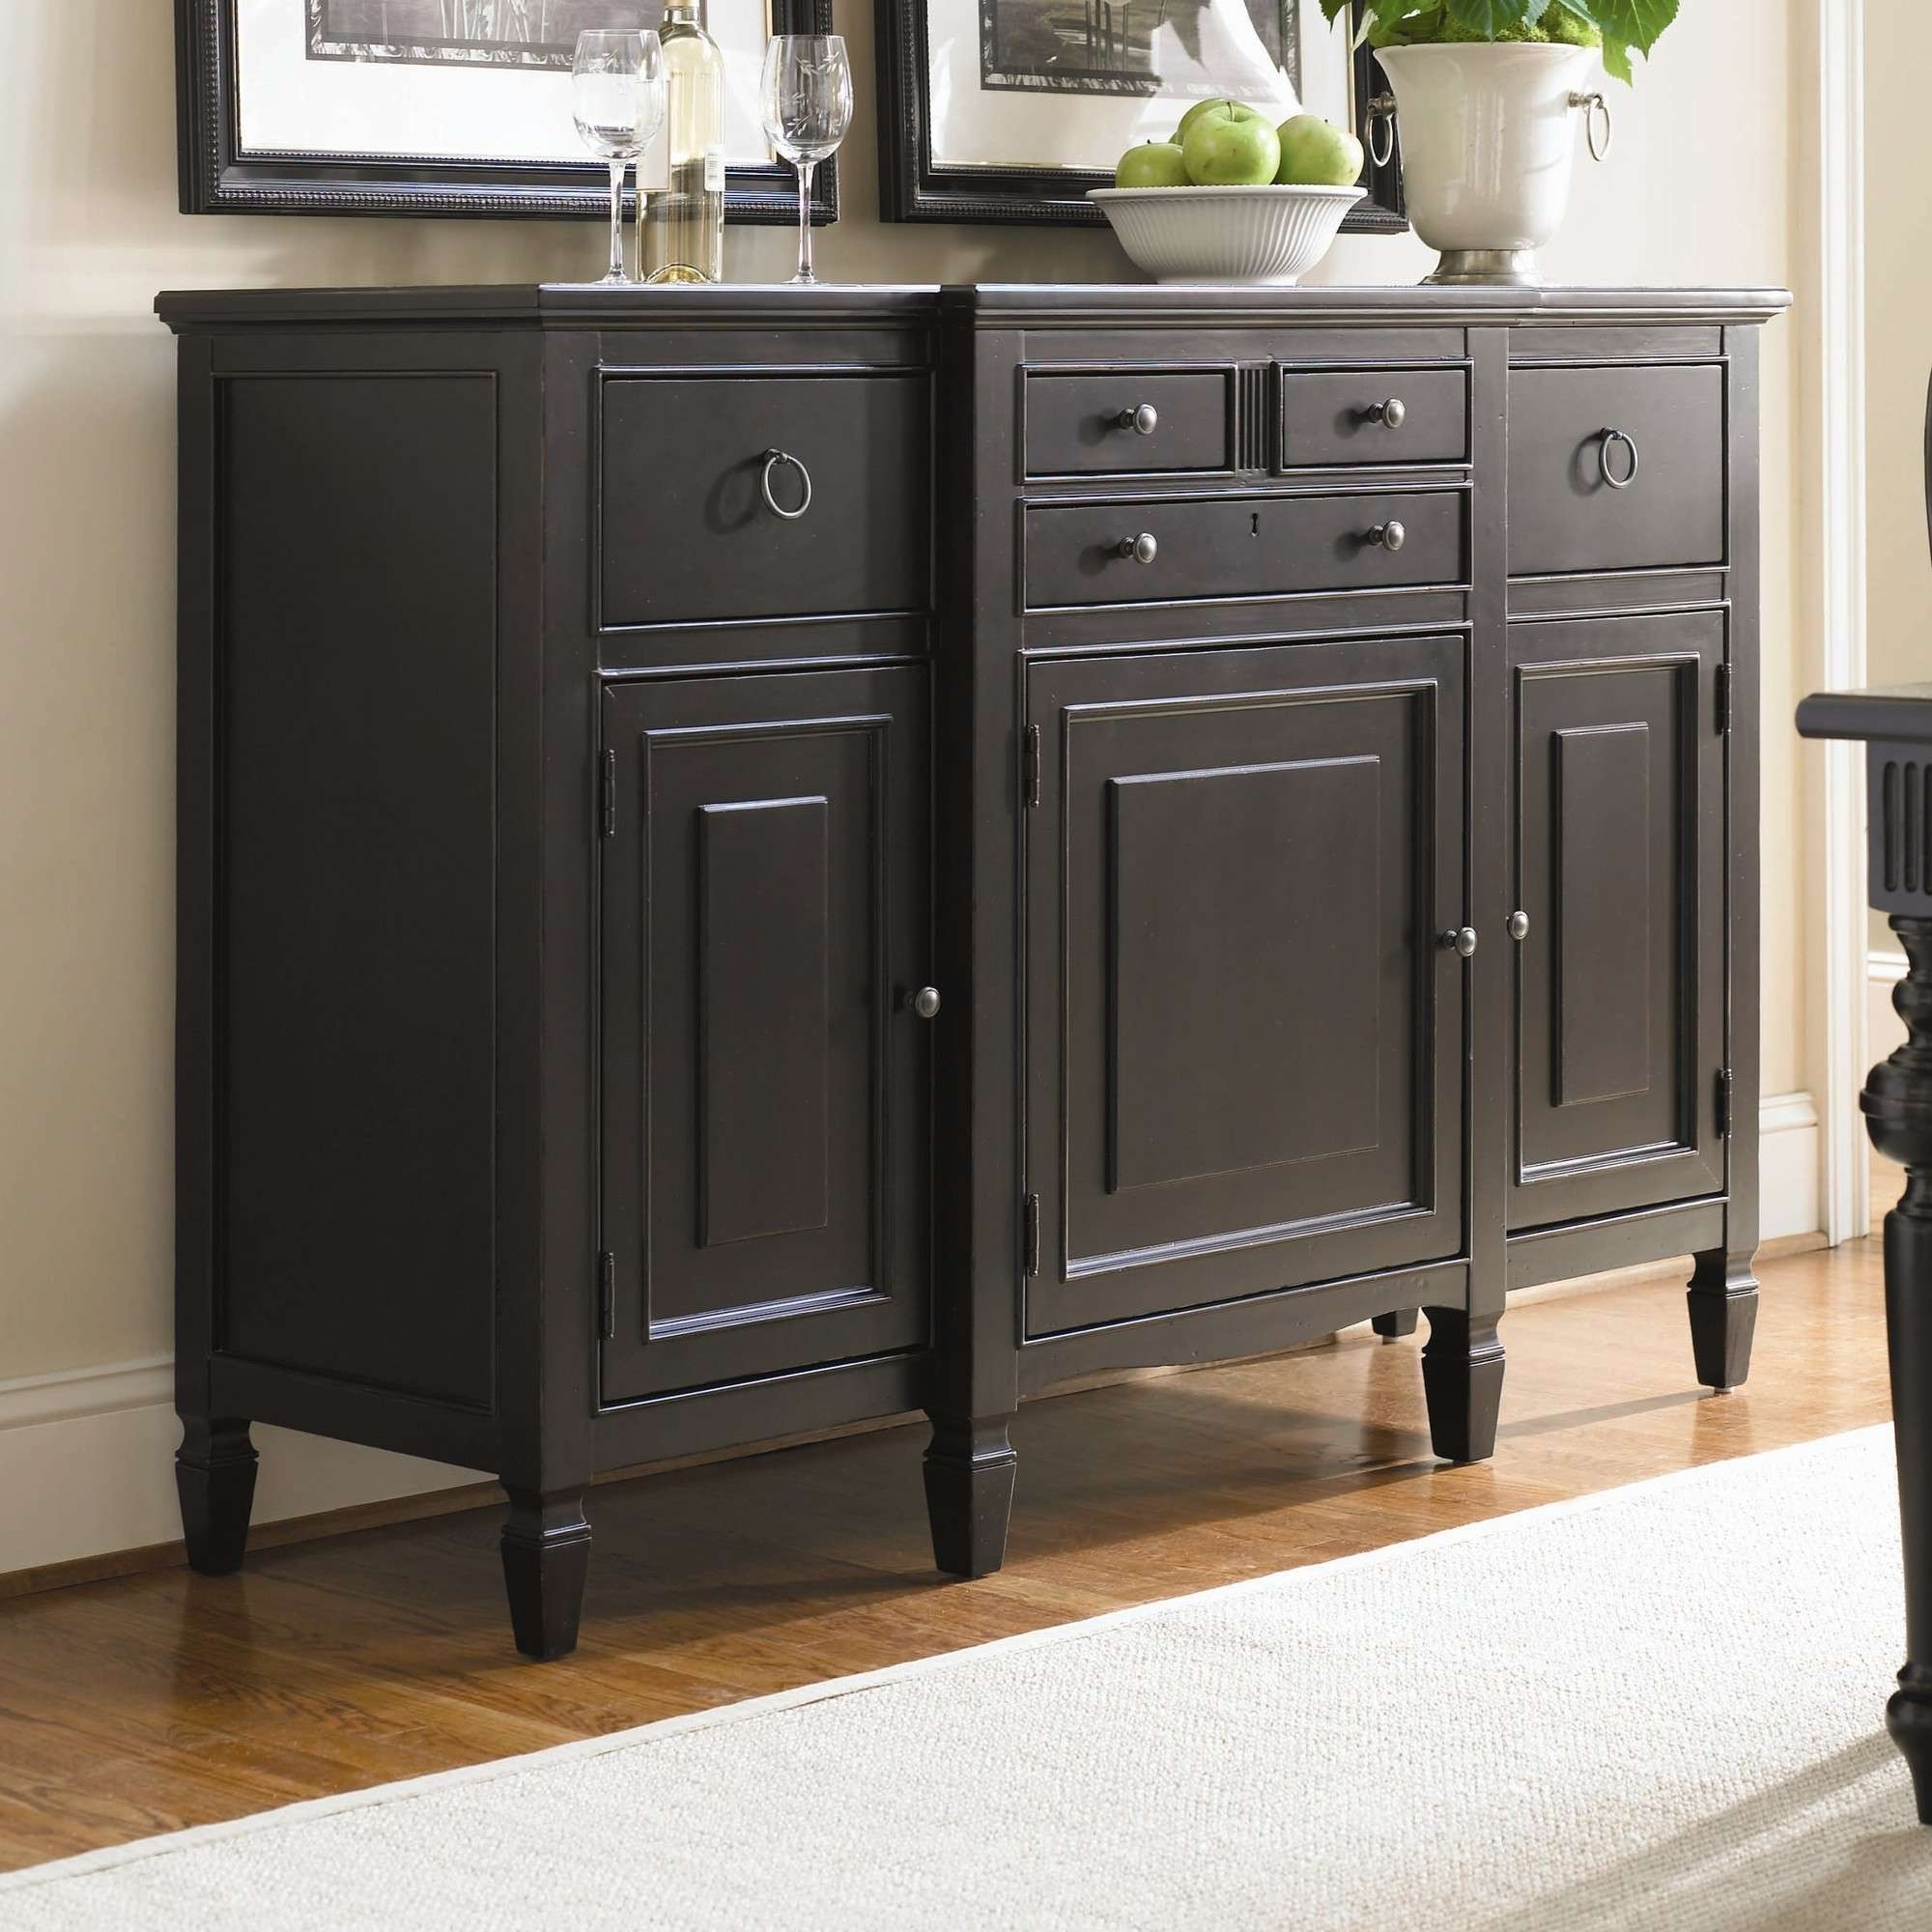 Beautiful Sideboard Buffet Table – Bjdgjy Regarding Sideboards And Tables (View 13 of 20)